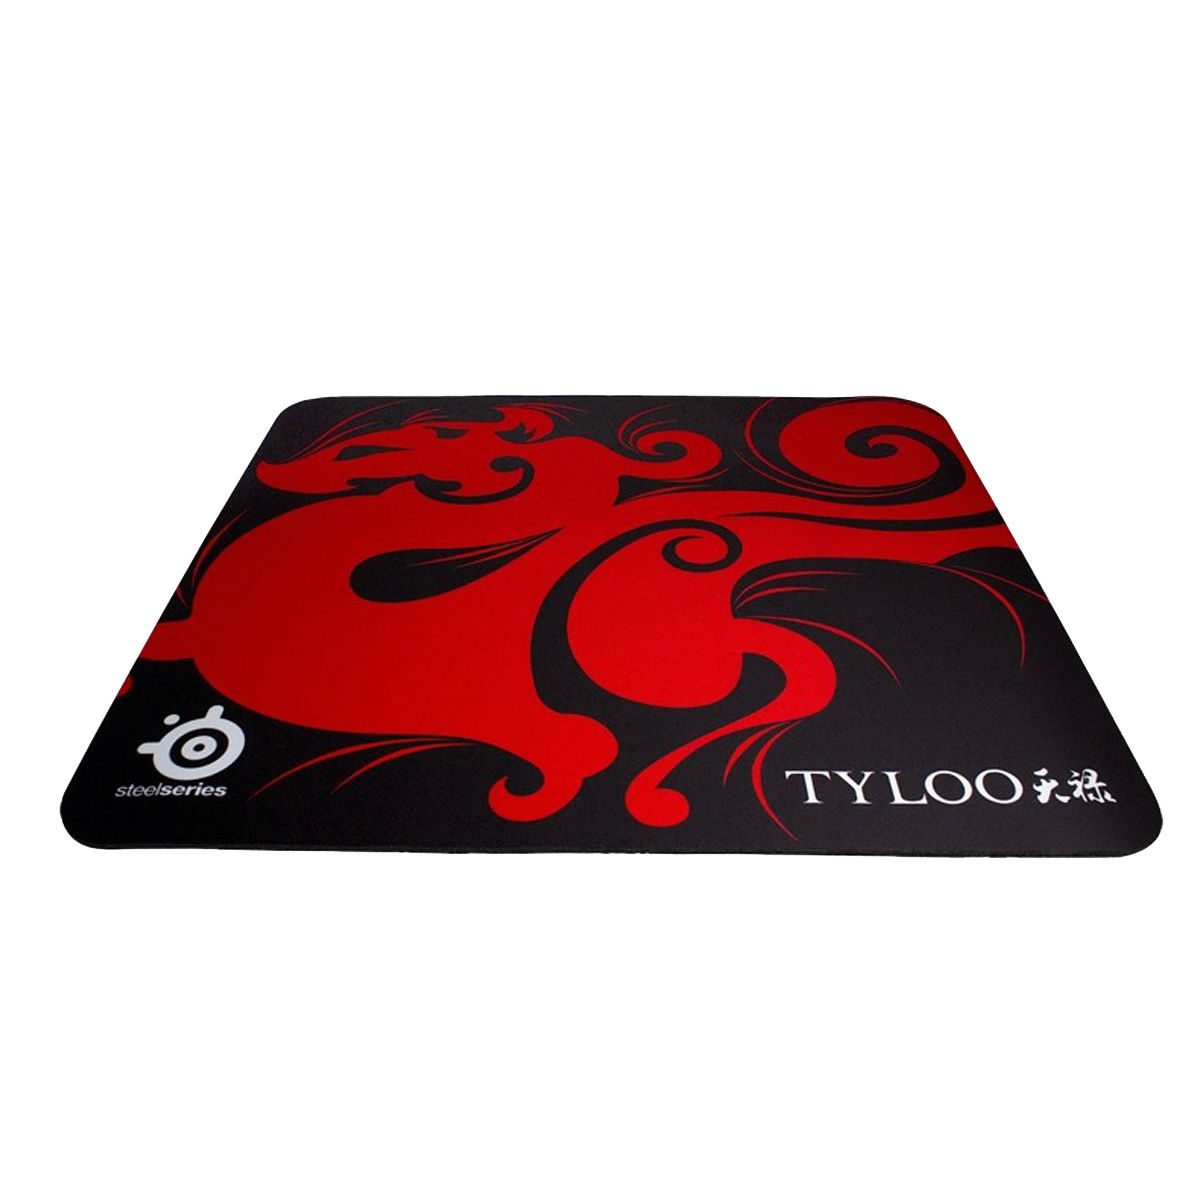 14 24 Tyloo Brand Steelseries Qck Gaming Mouse Pad Mat Red Large Size 4504004mm Ebay Electronics Kovrik Dlya Myshi Mysh Kovrik